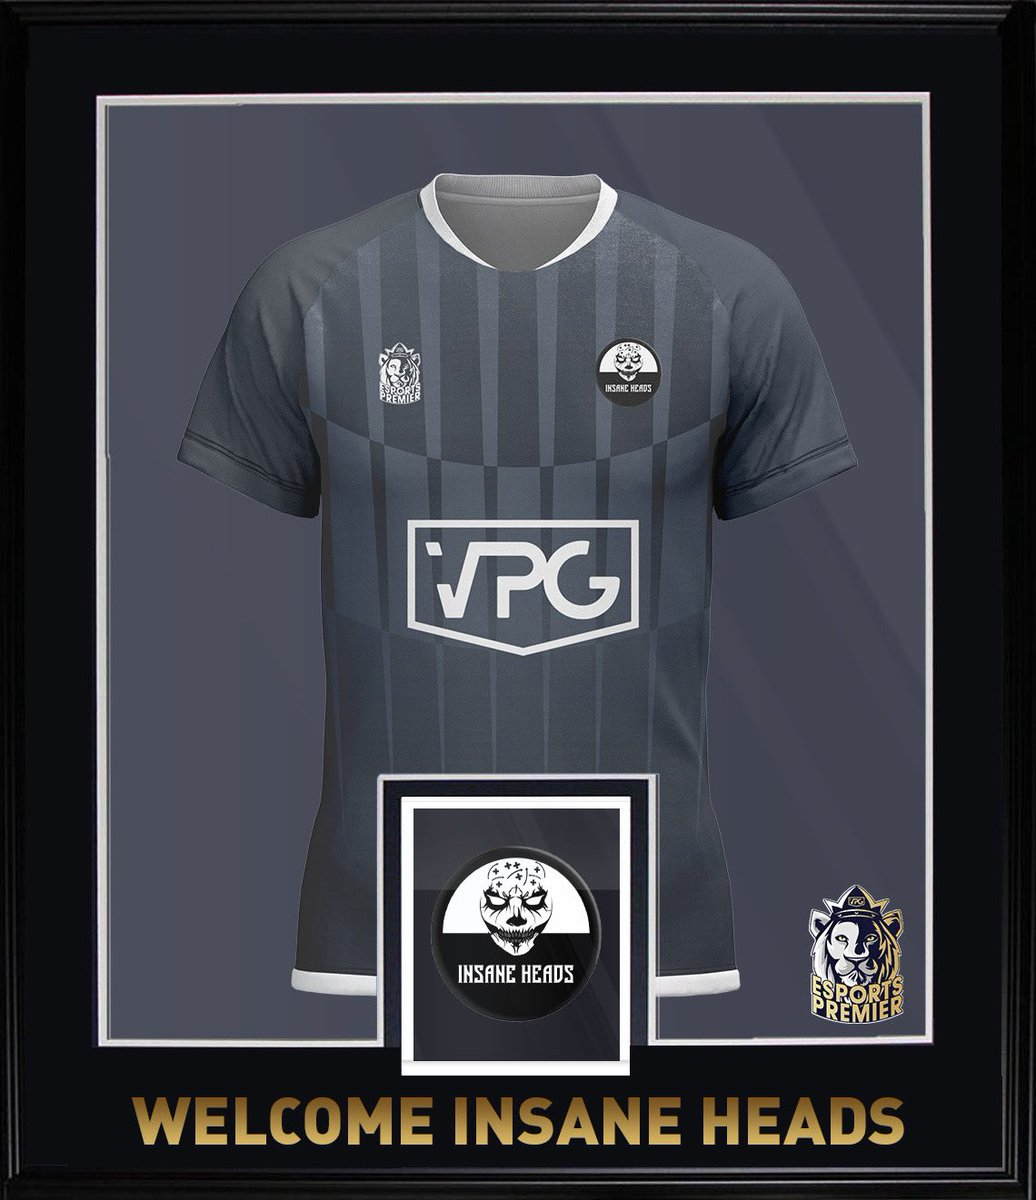 🤩 Welcome @insane_heads into the @VPGPremier !   🌍 Nationality: 🇩🇪   🏆 Won promotion from Premier North, now ready for the challenge in the highest level. The heads are ready to go Insane. 🔥   #Insane #FIFA21 #ProClubs #VPG https://t.co/cfJQ8KfxMZ